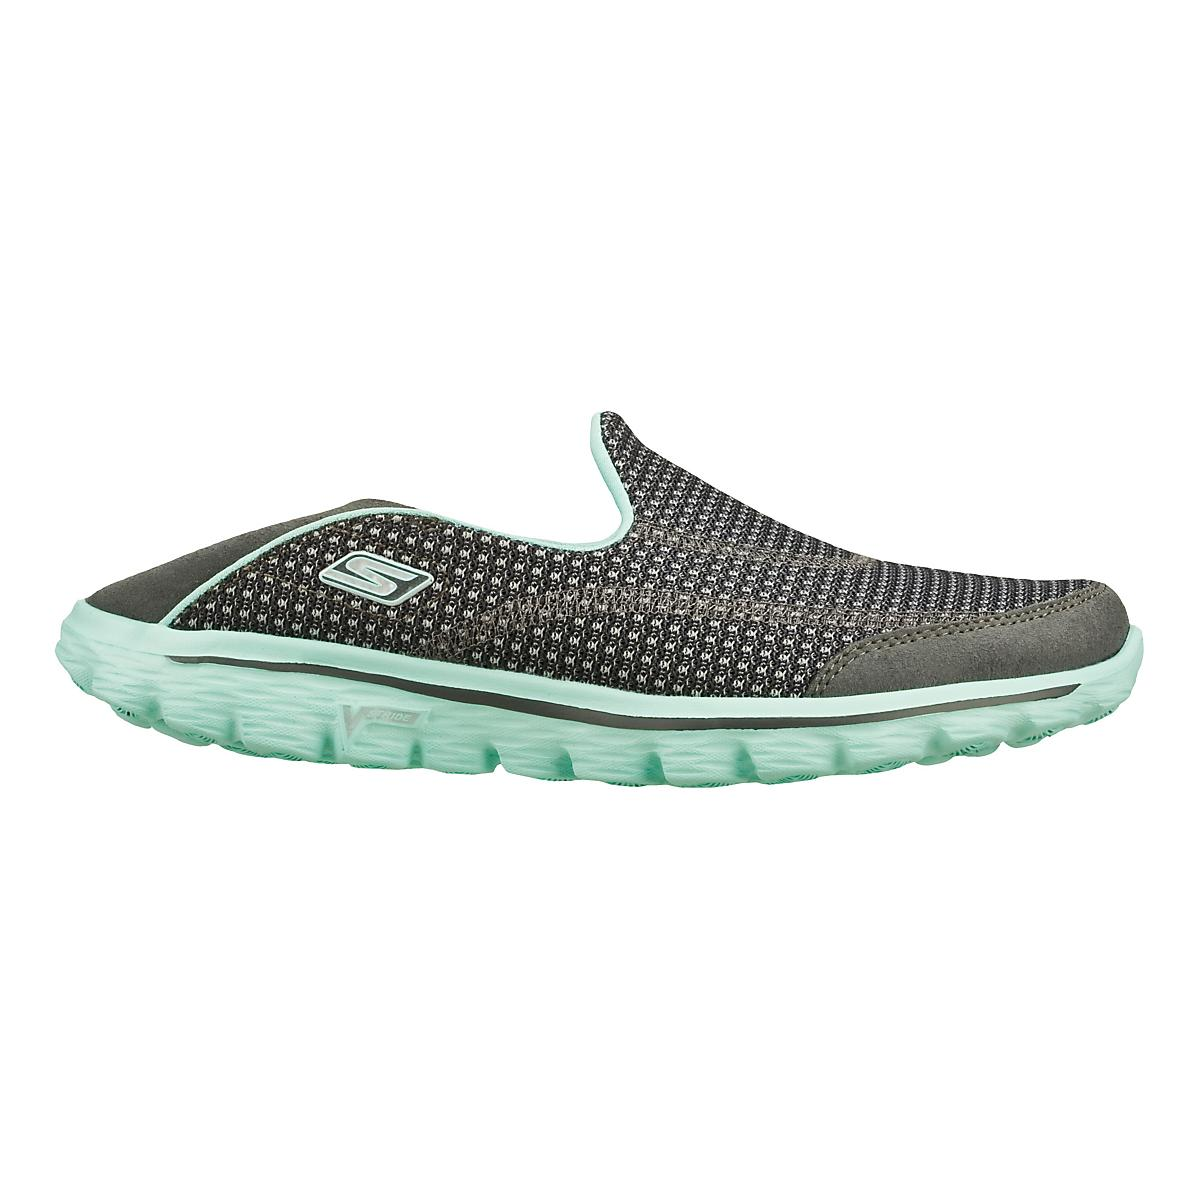 NEW! SKECHERS WOMENS Gowalk 2 – Convertible Walking Shoes